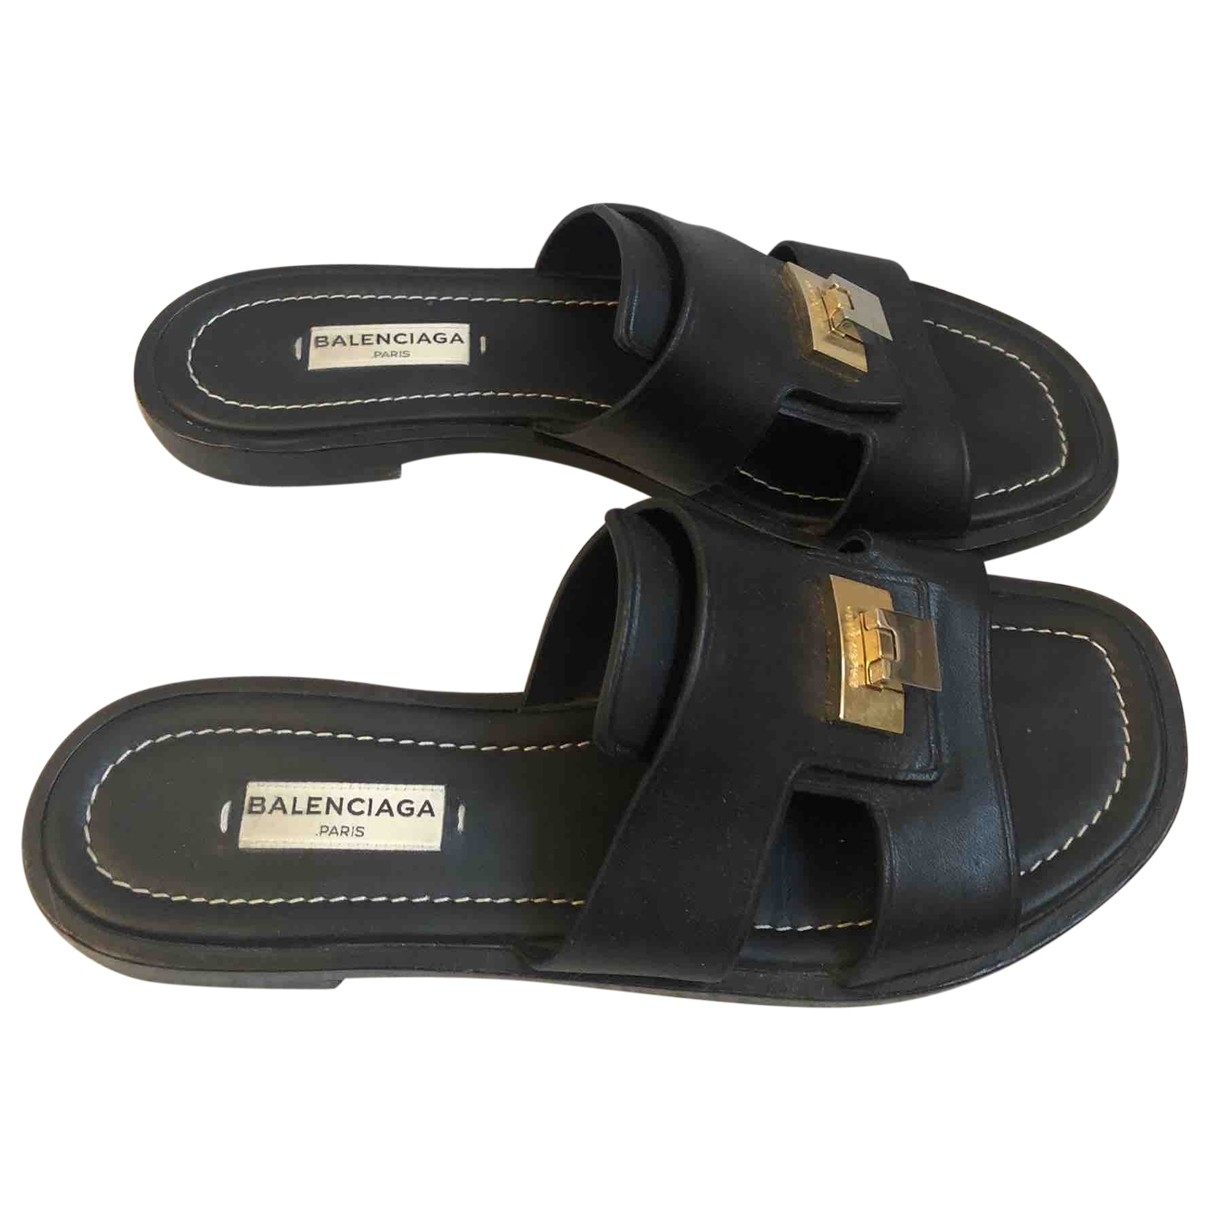 Balenciaga \N Black Leather Sandals for Women 36 EU